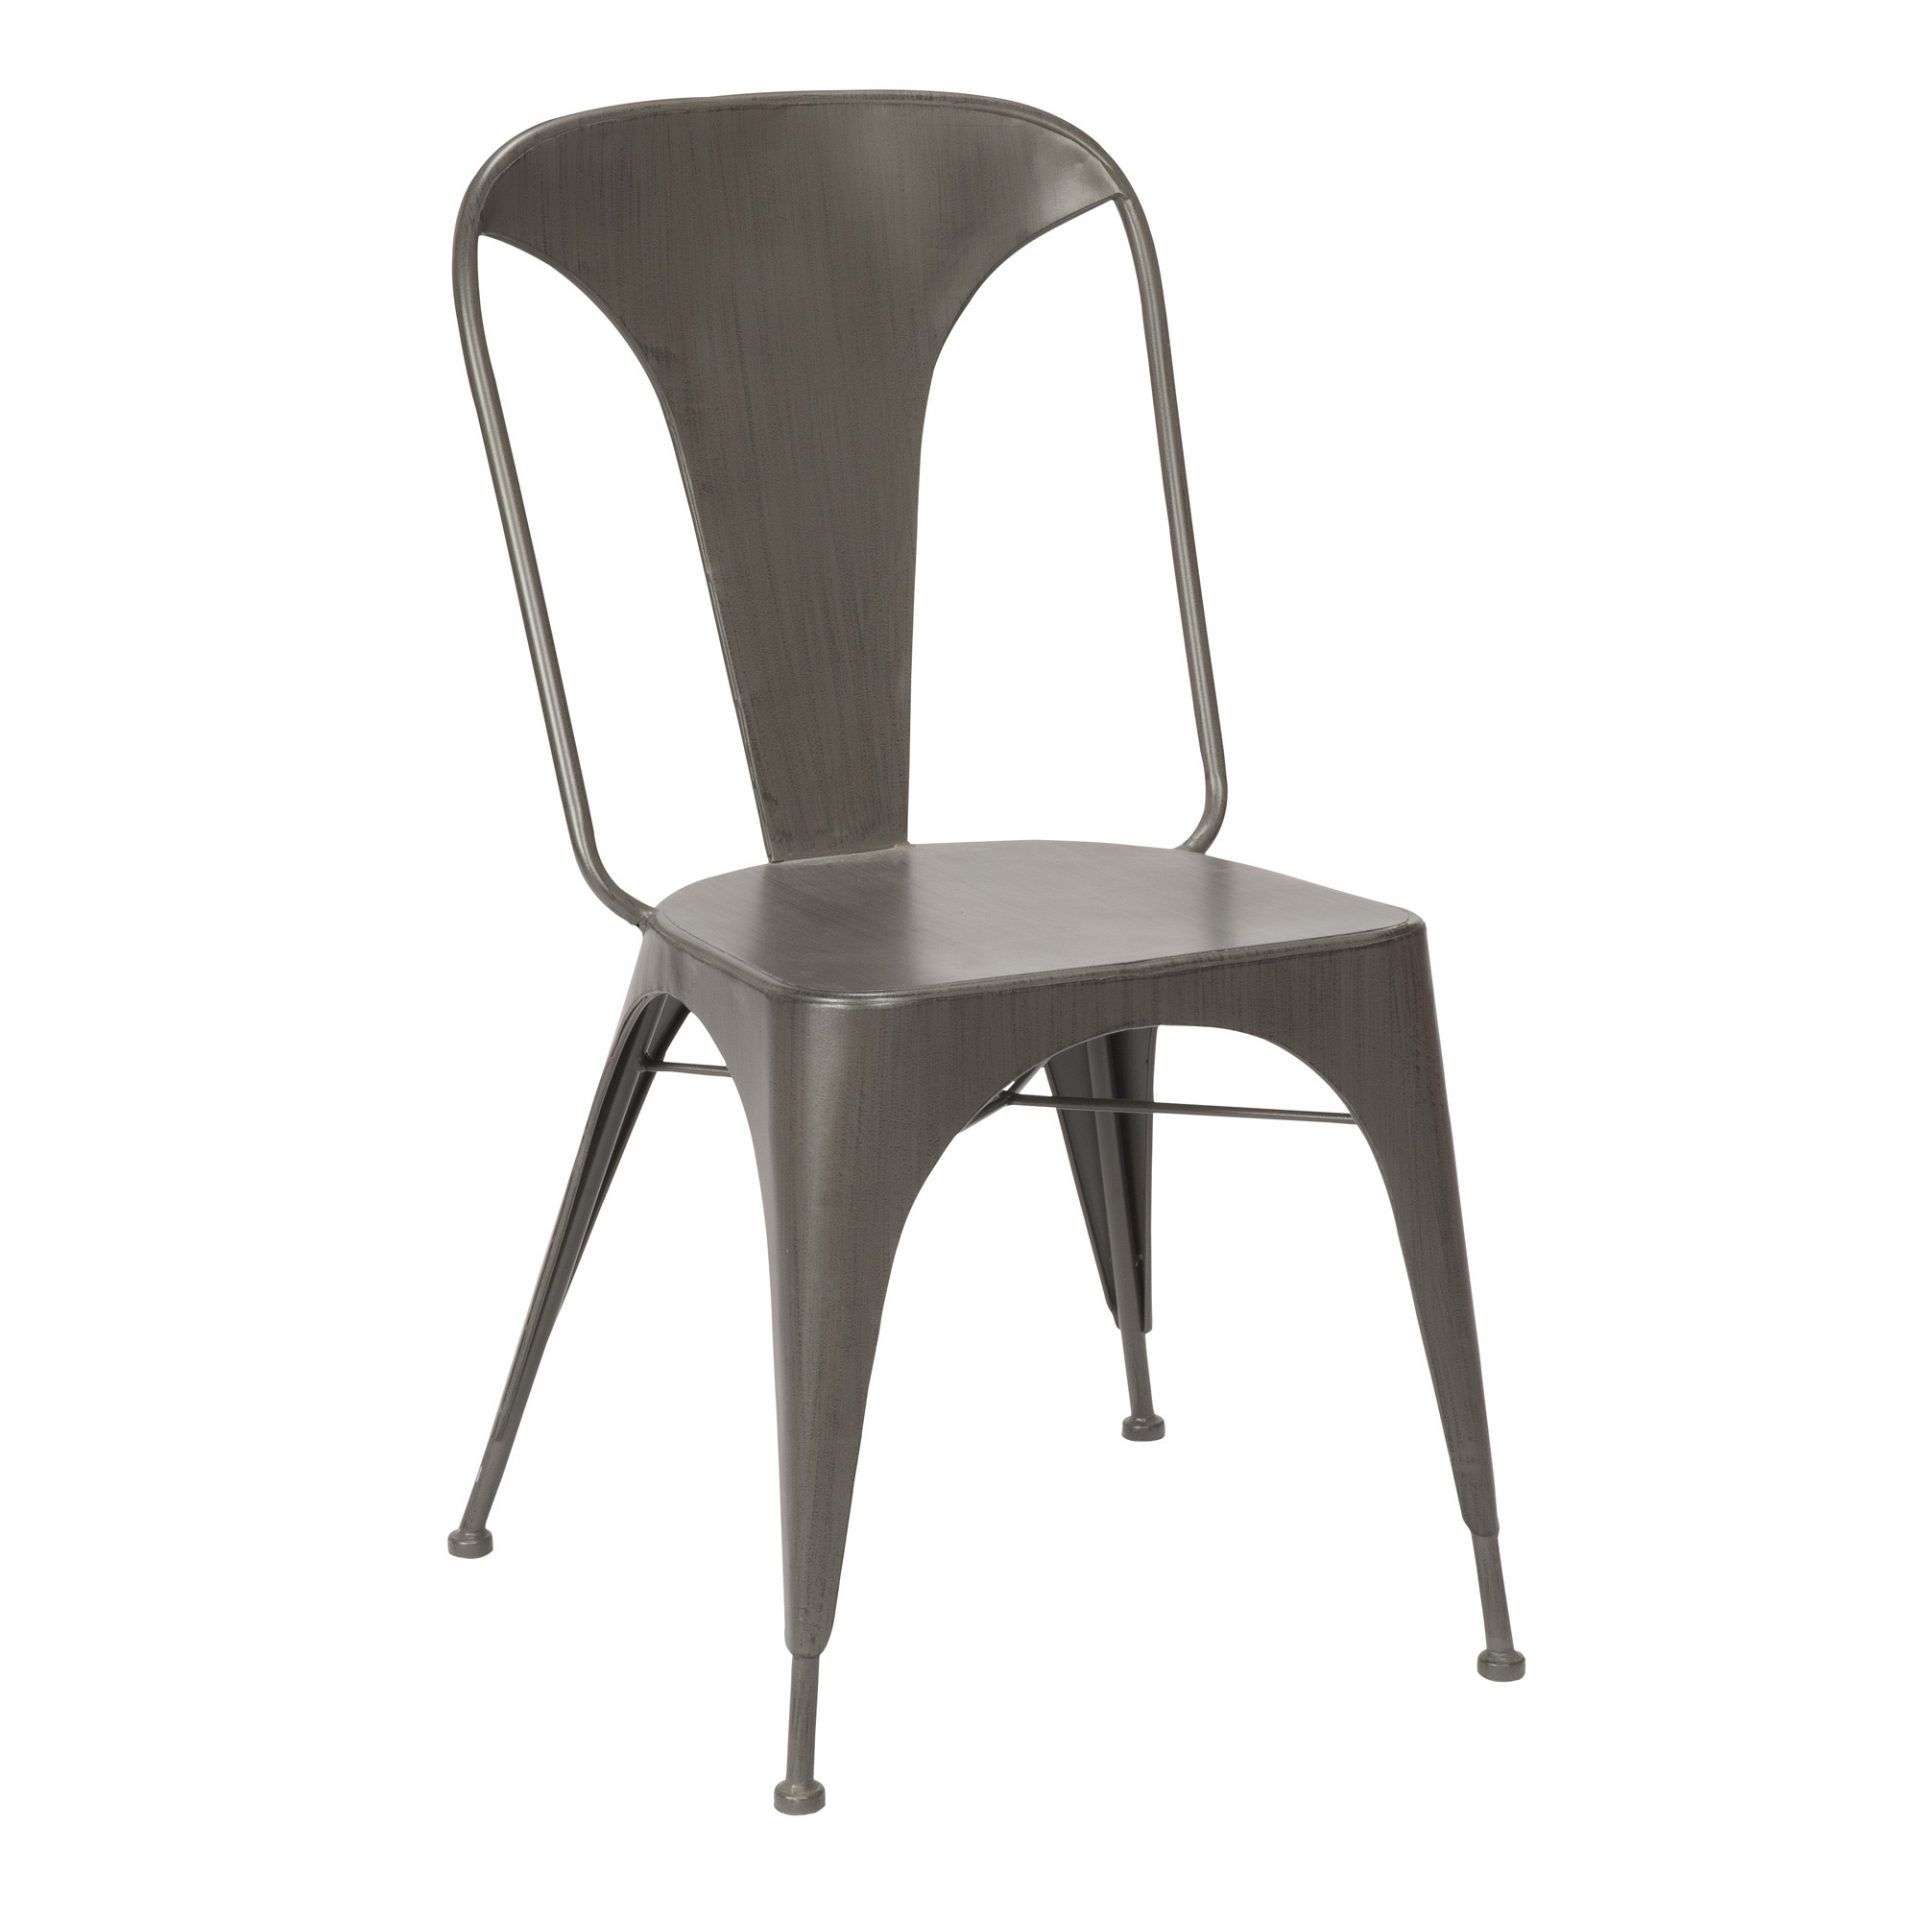 Brooklyn Chairm2  Dining Chairs  Moe's Wholesale  Kalookis New Wholesale Dining Room Chairs 2018